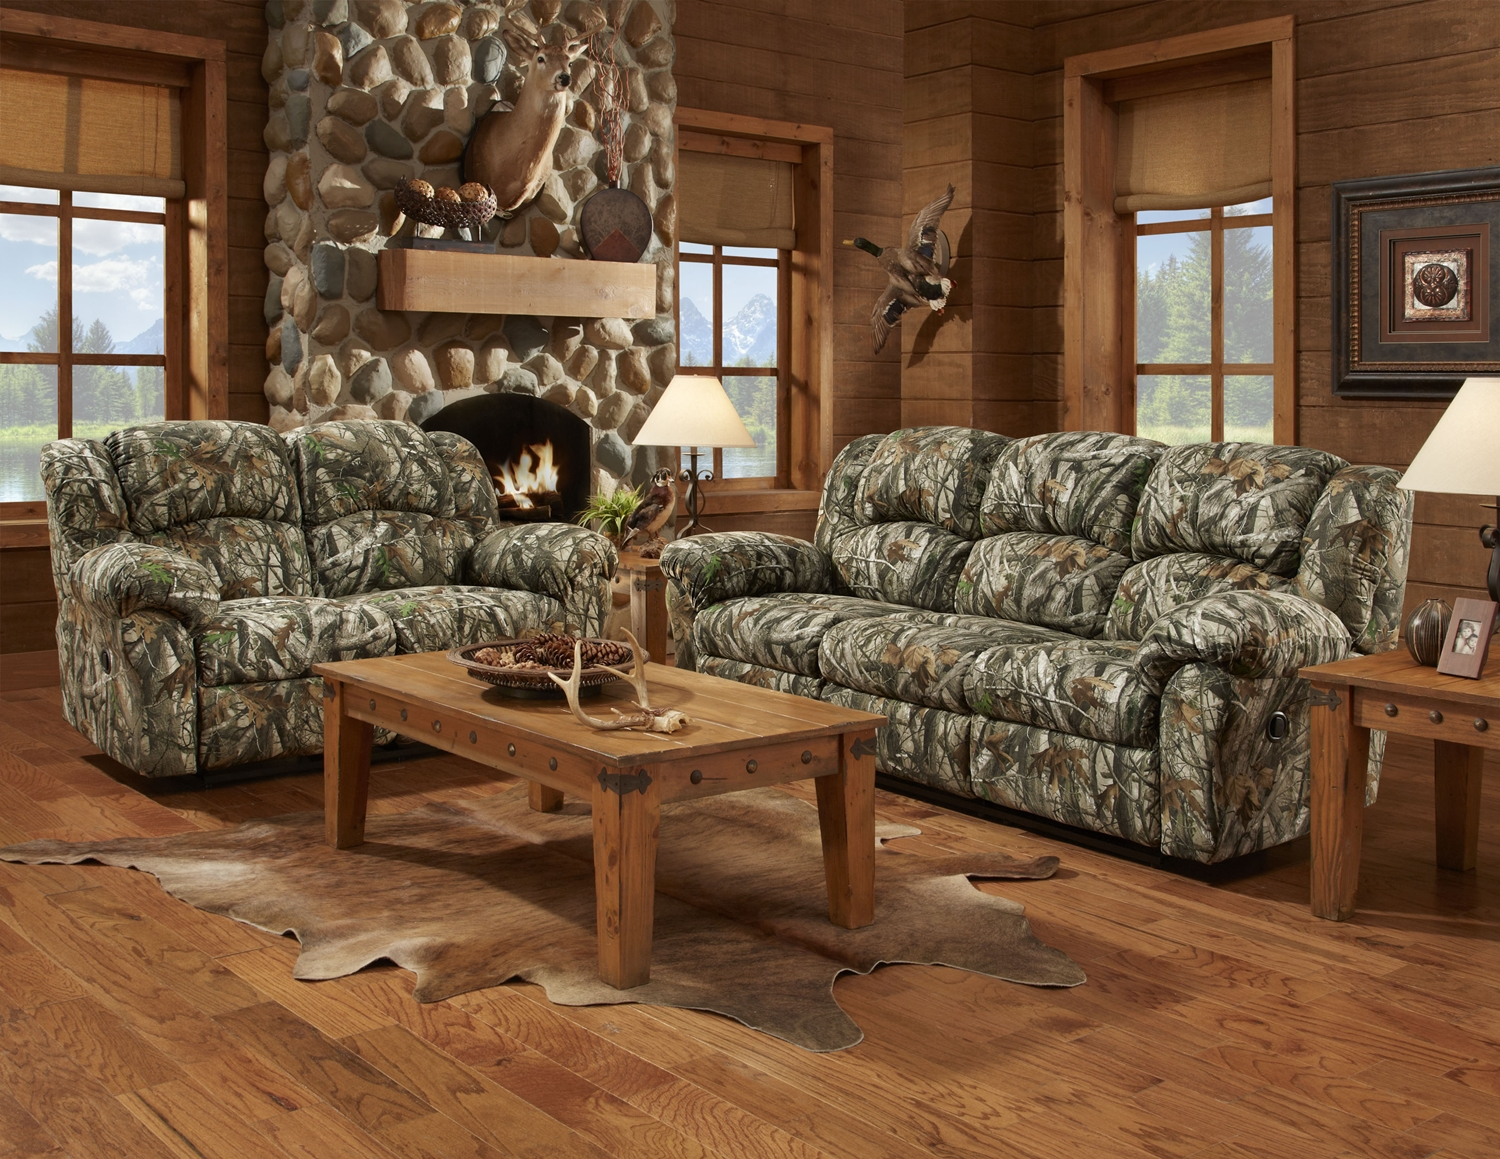 Wooden Living Room Chair Mossy Oak Camouflage Reclining Sofa Hunting Lodge Couch Living